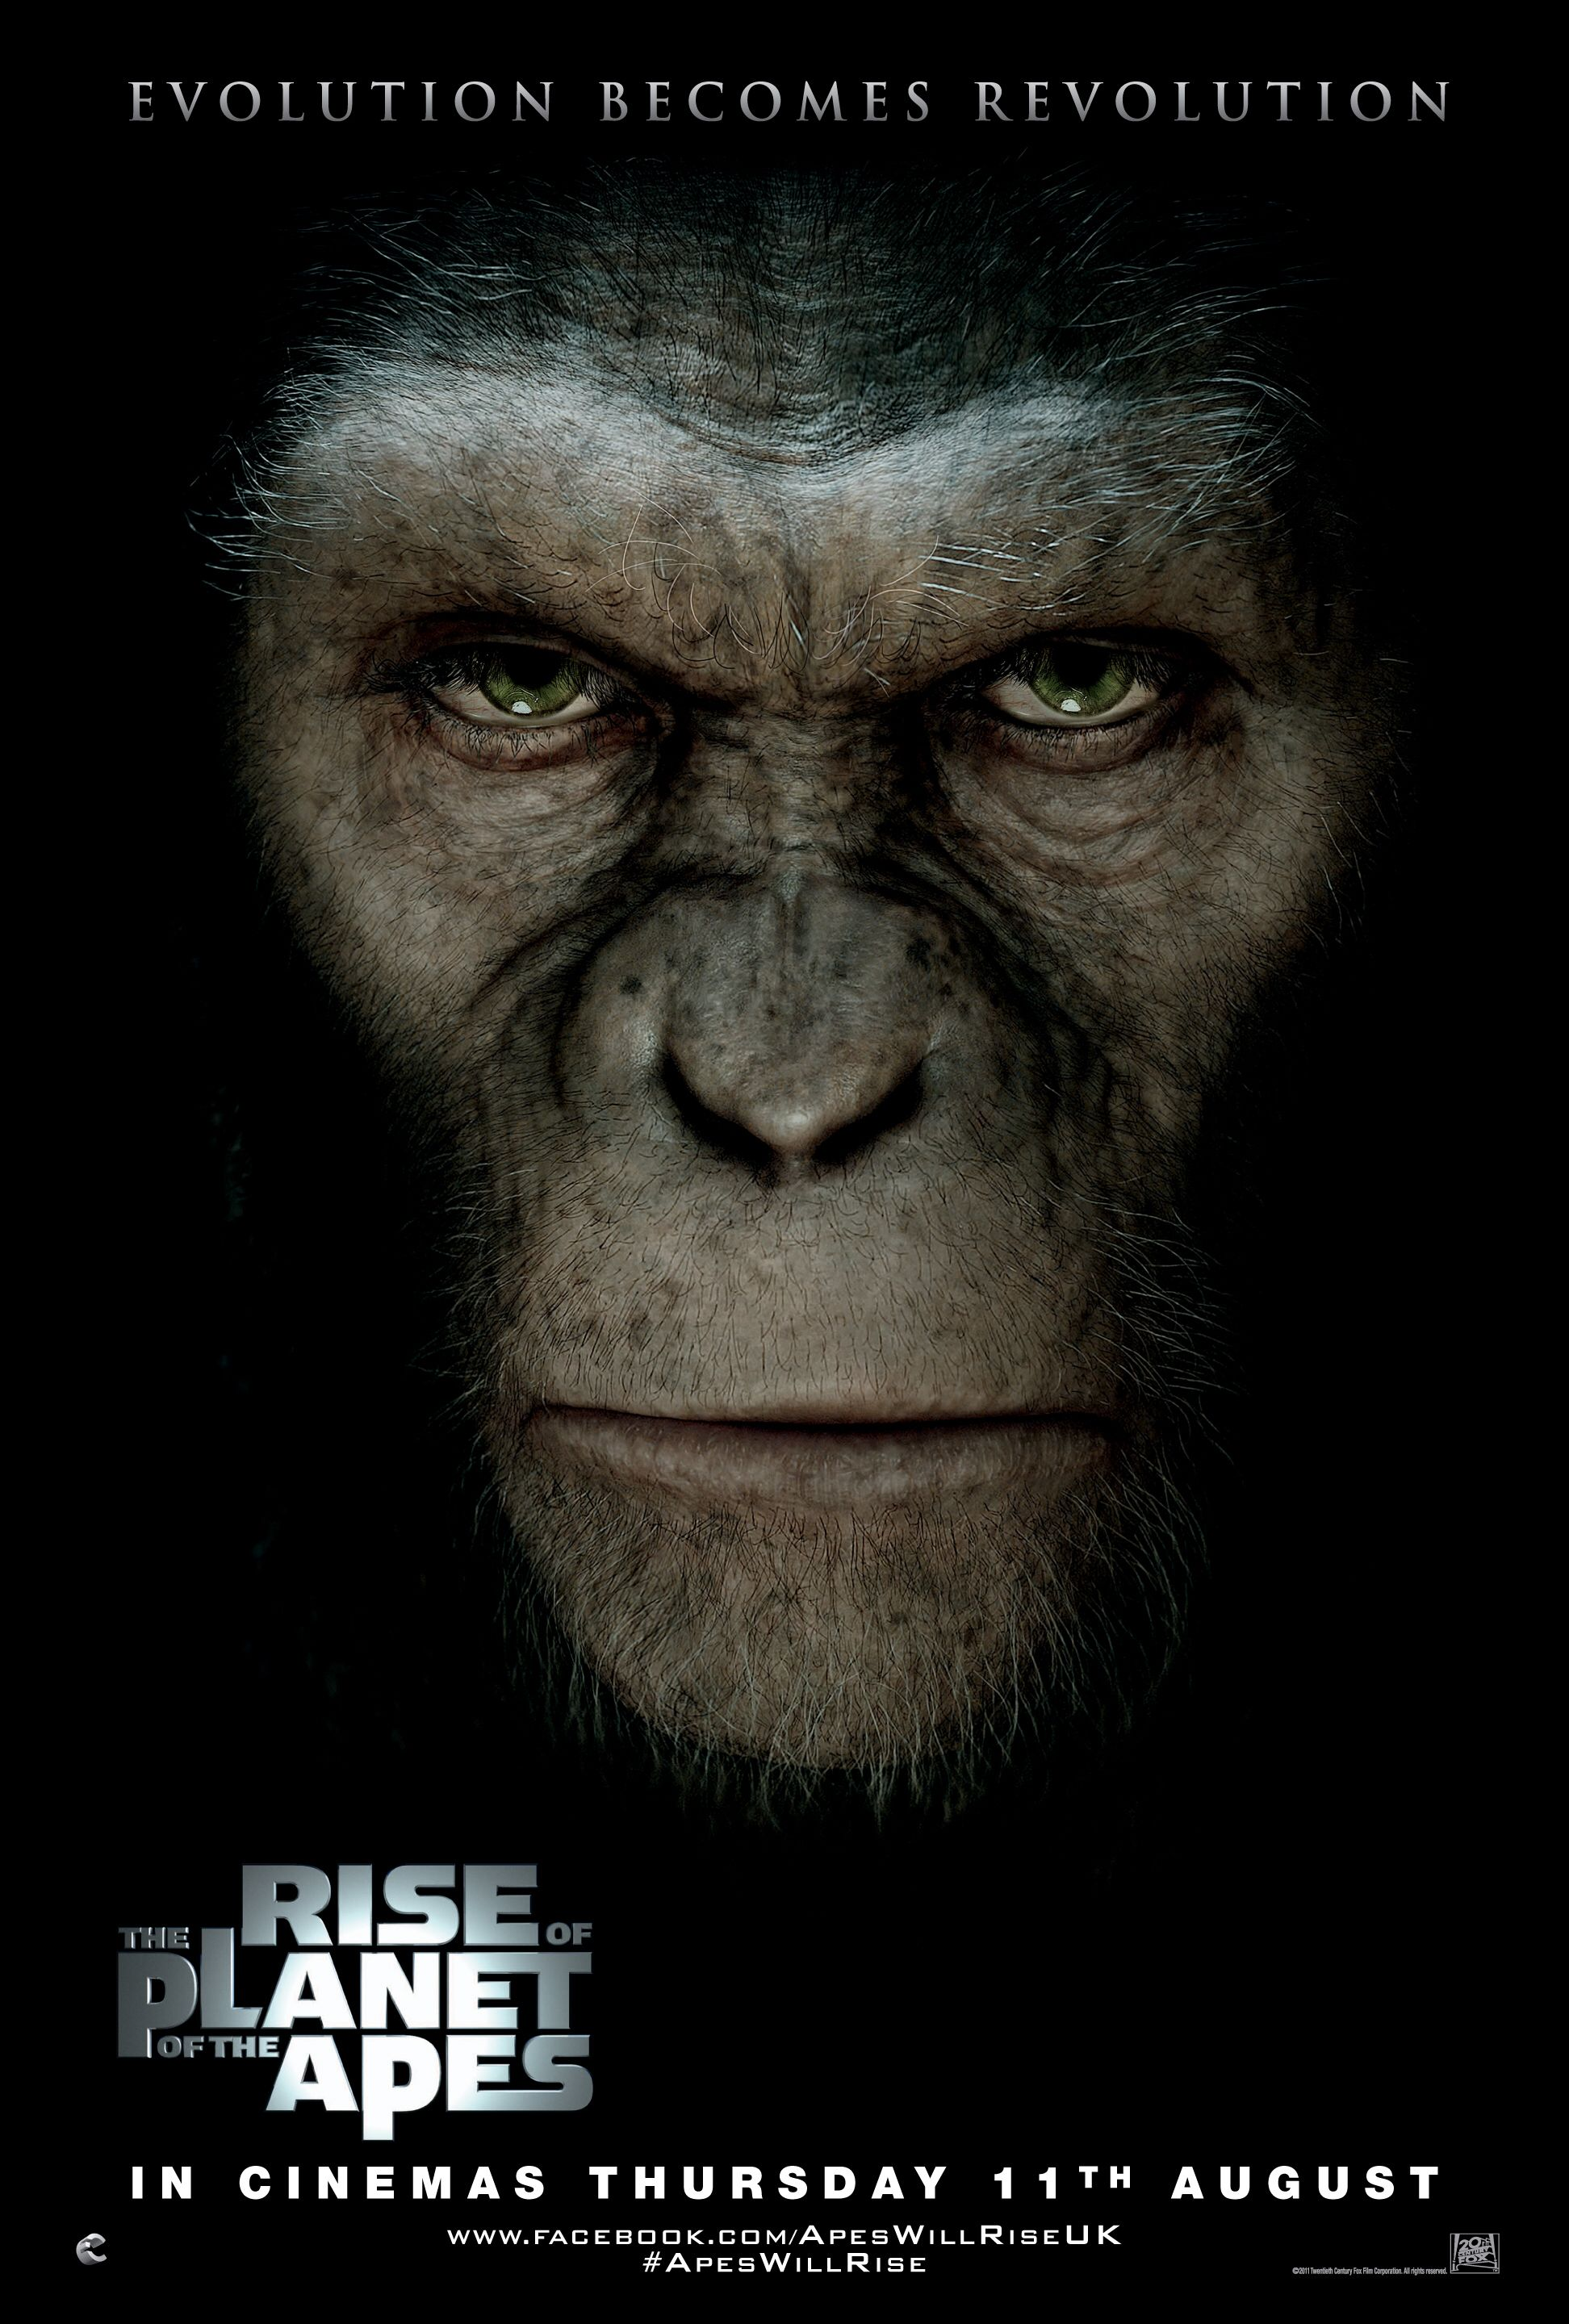 War for the planet of the apes (2017) imdb.